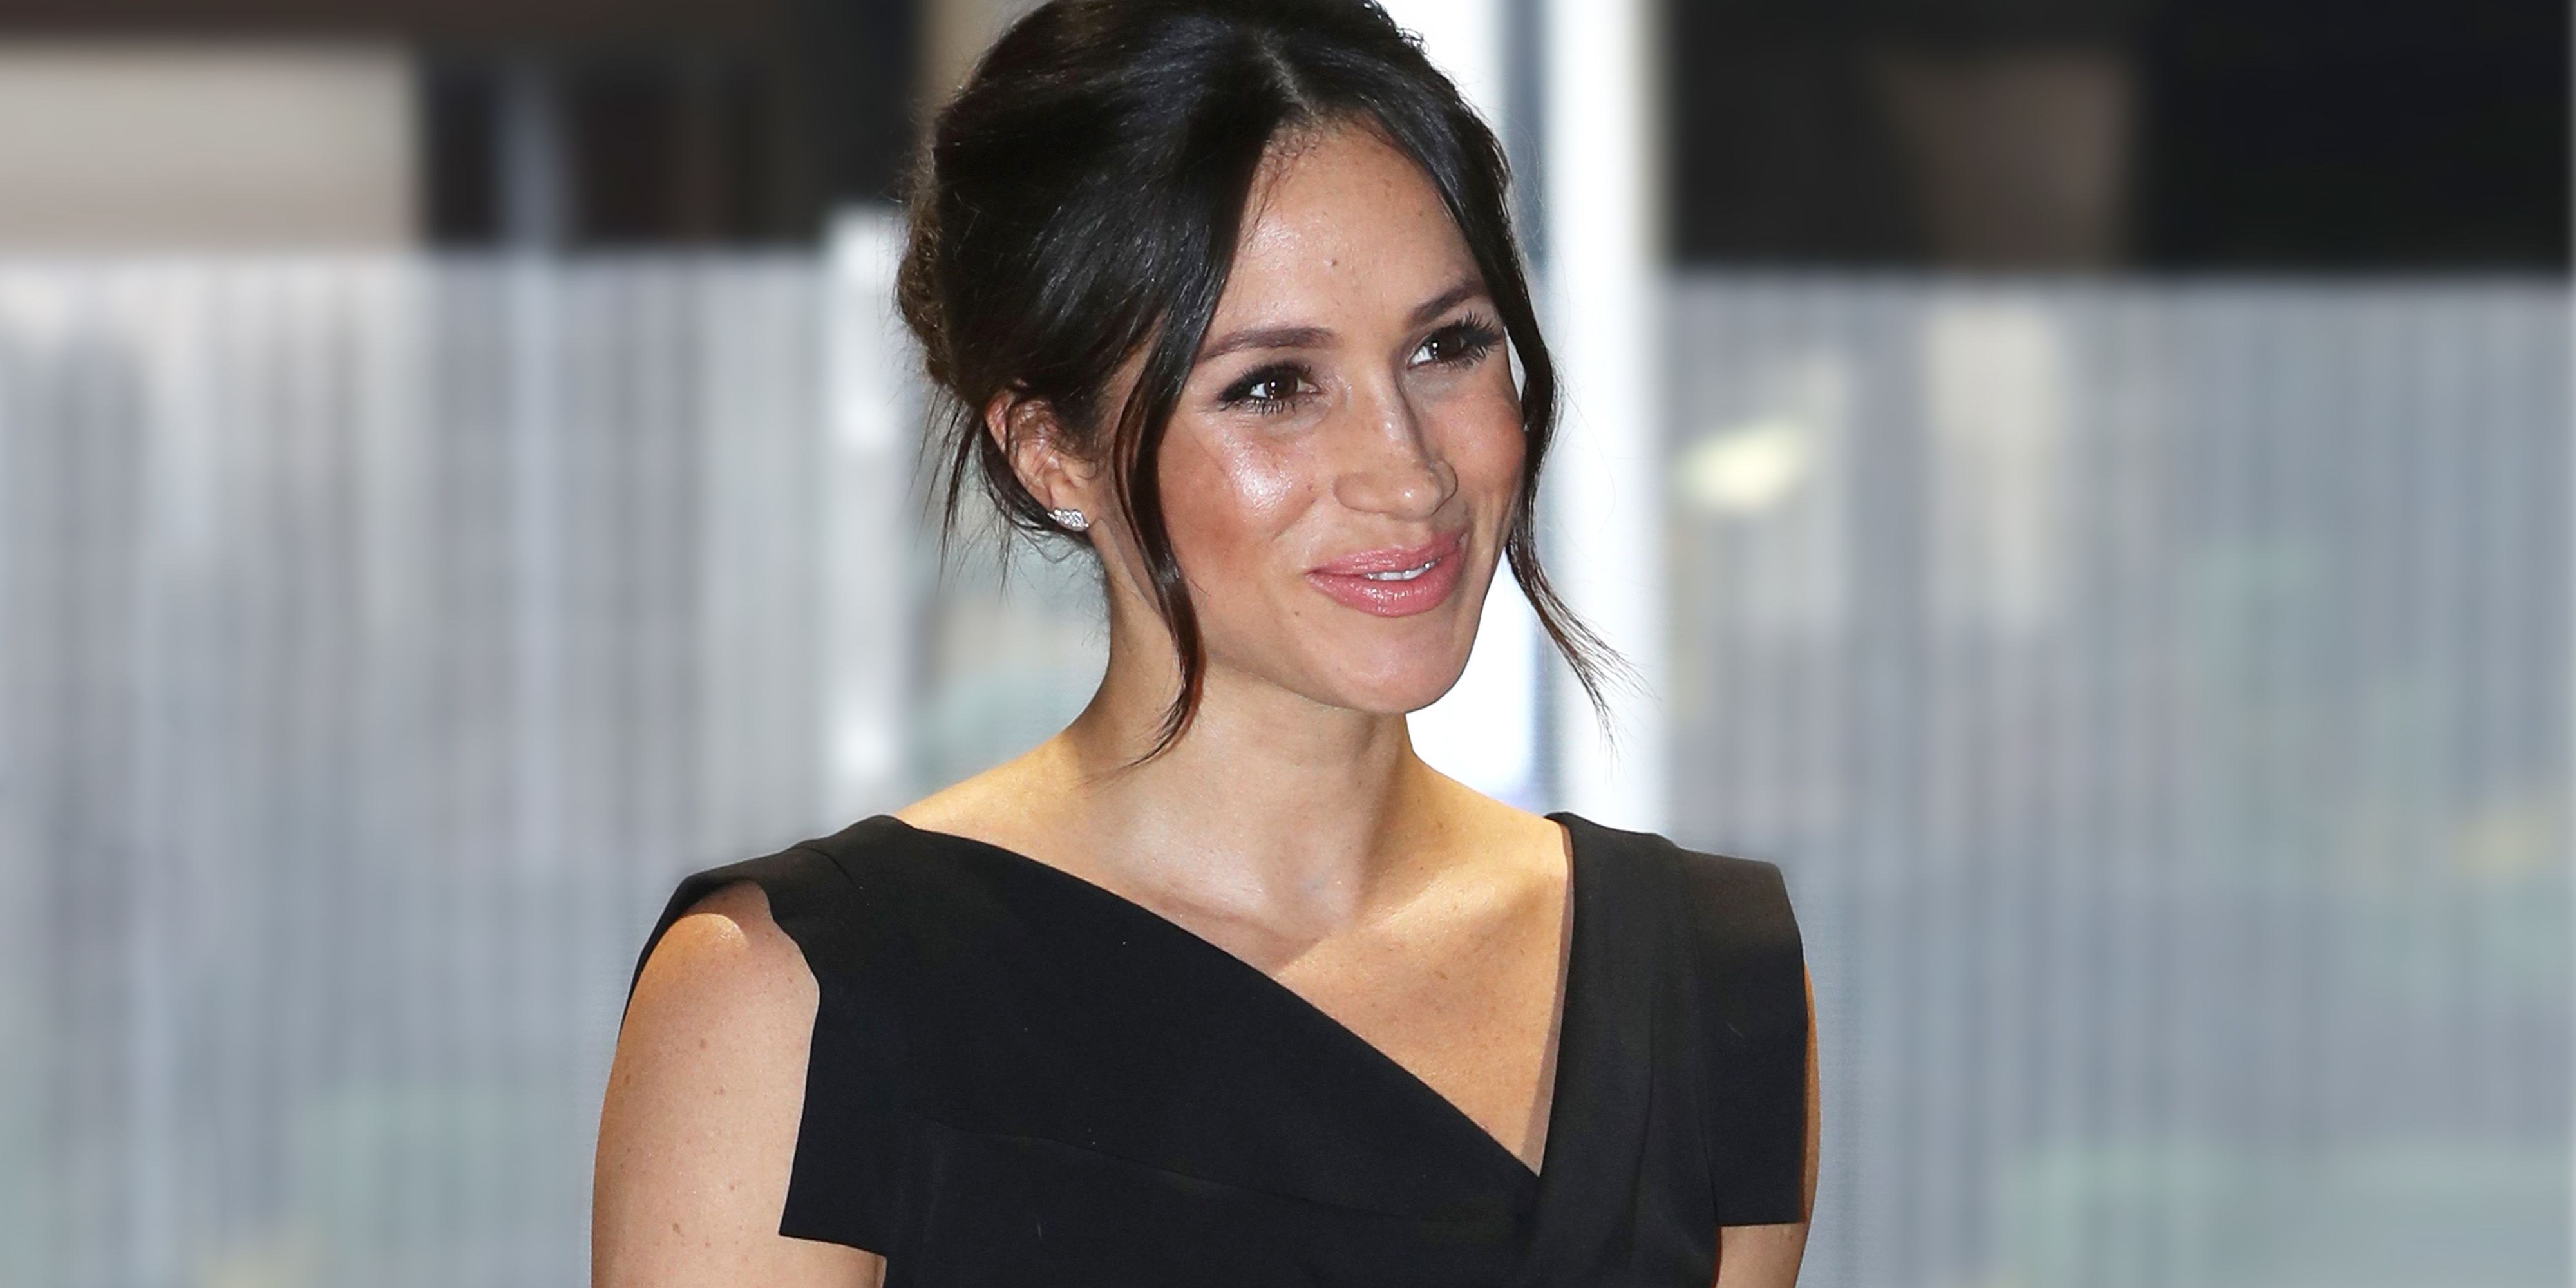 Blake Lively, Kim Kardashian, and Other Stars Also Own Meghan Markle's Latest Dress